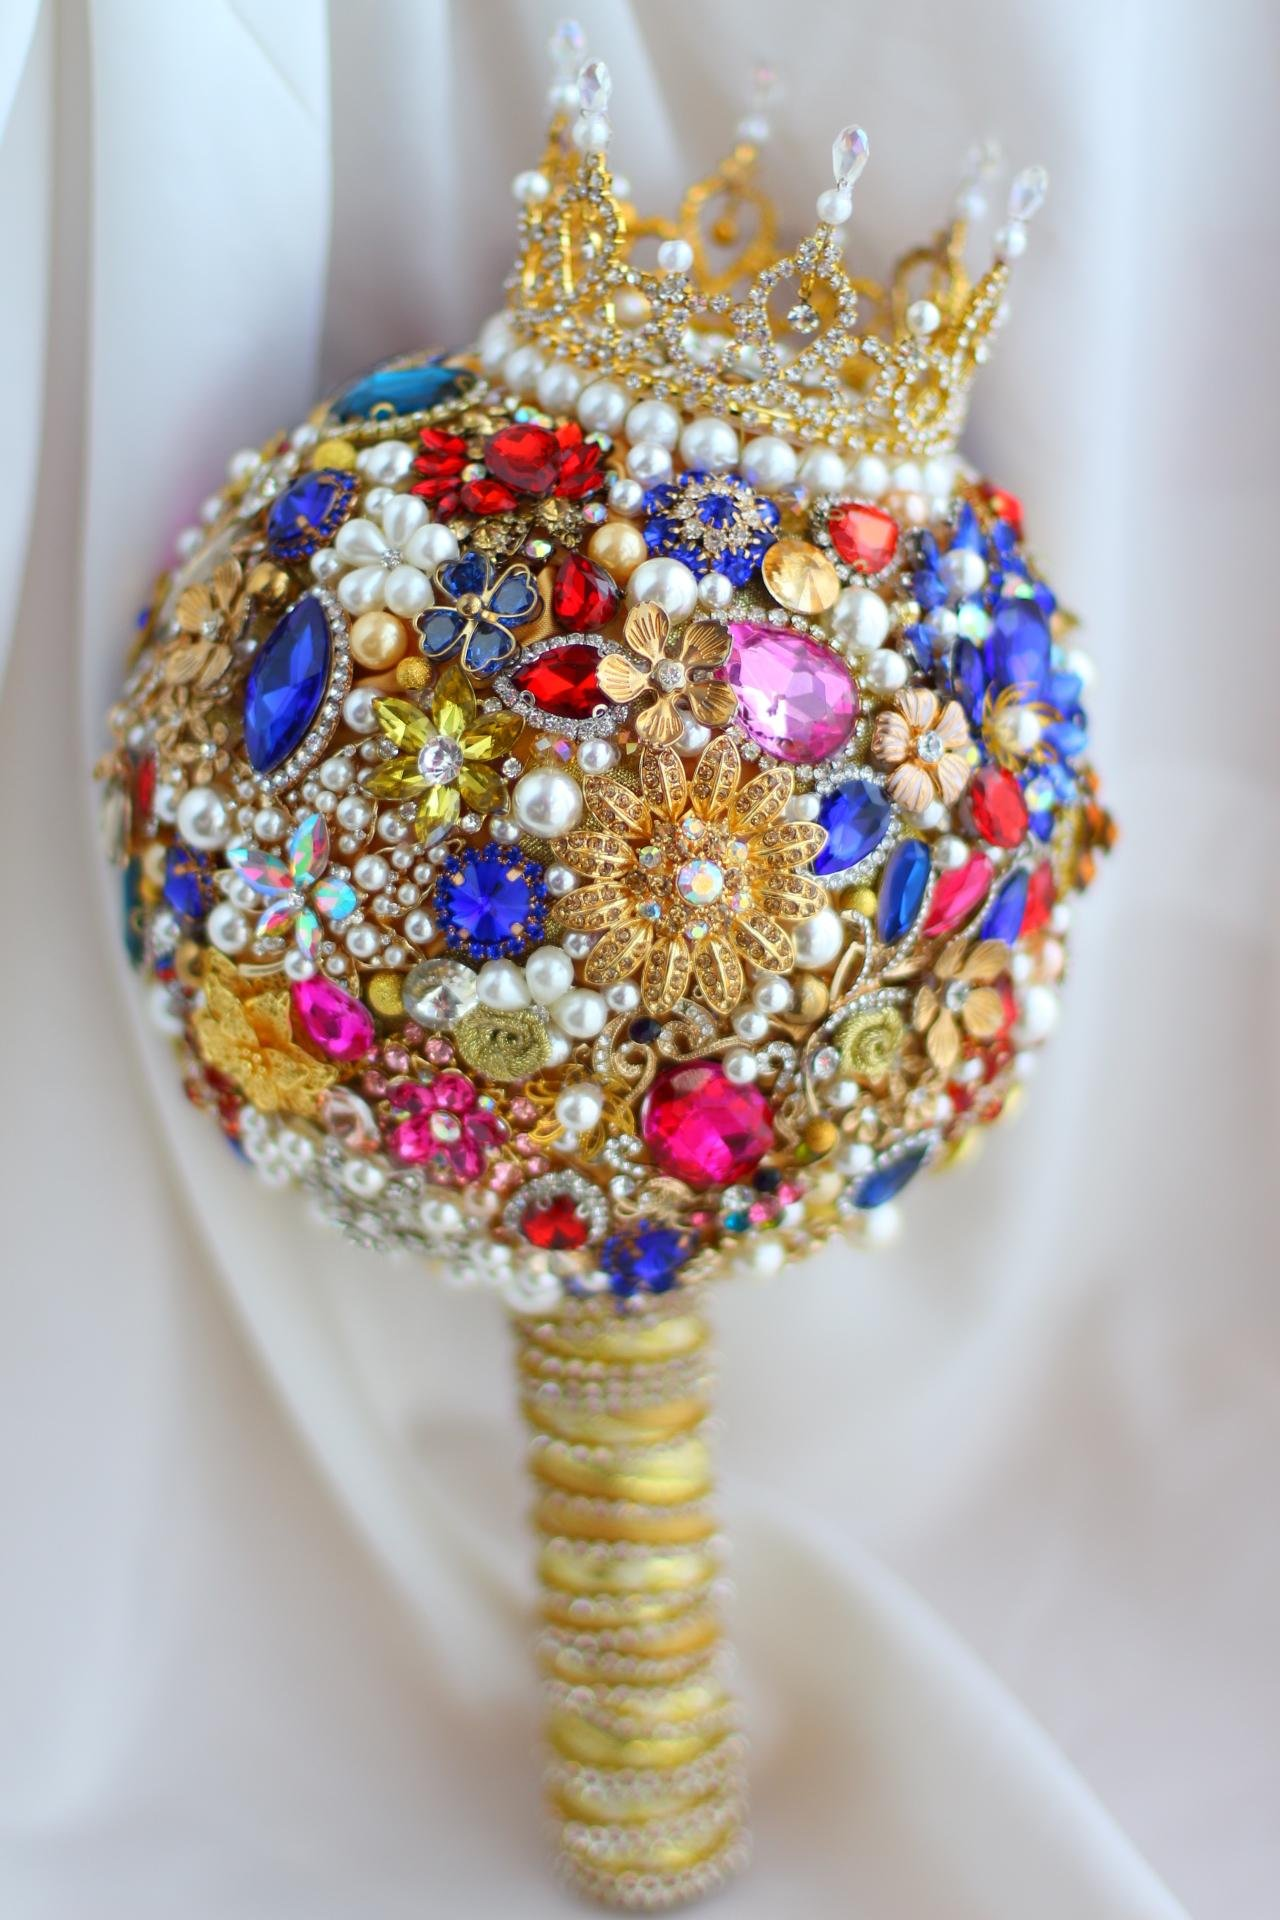 Iffo royal style gem custom bouquet small crown section (Little Crown)